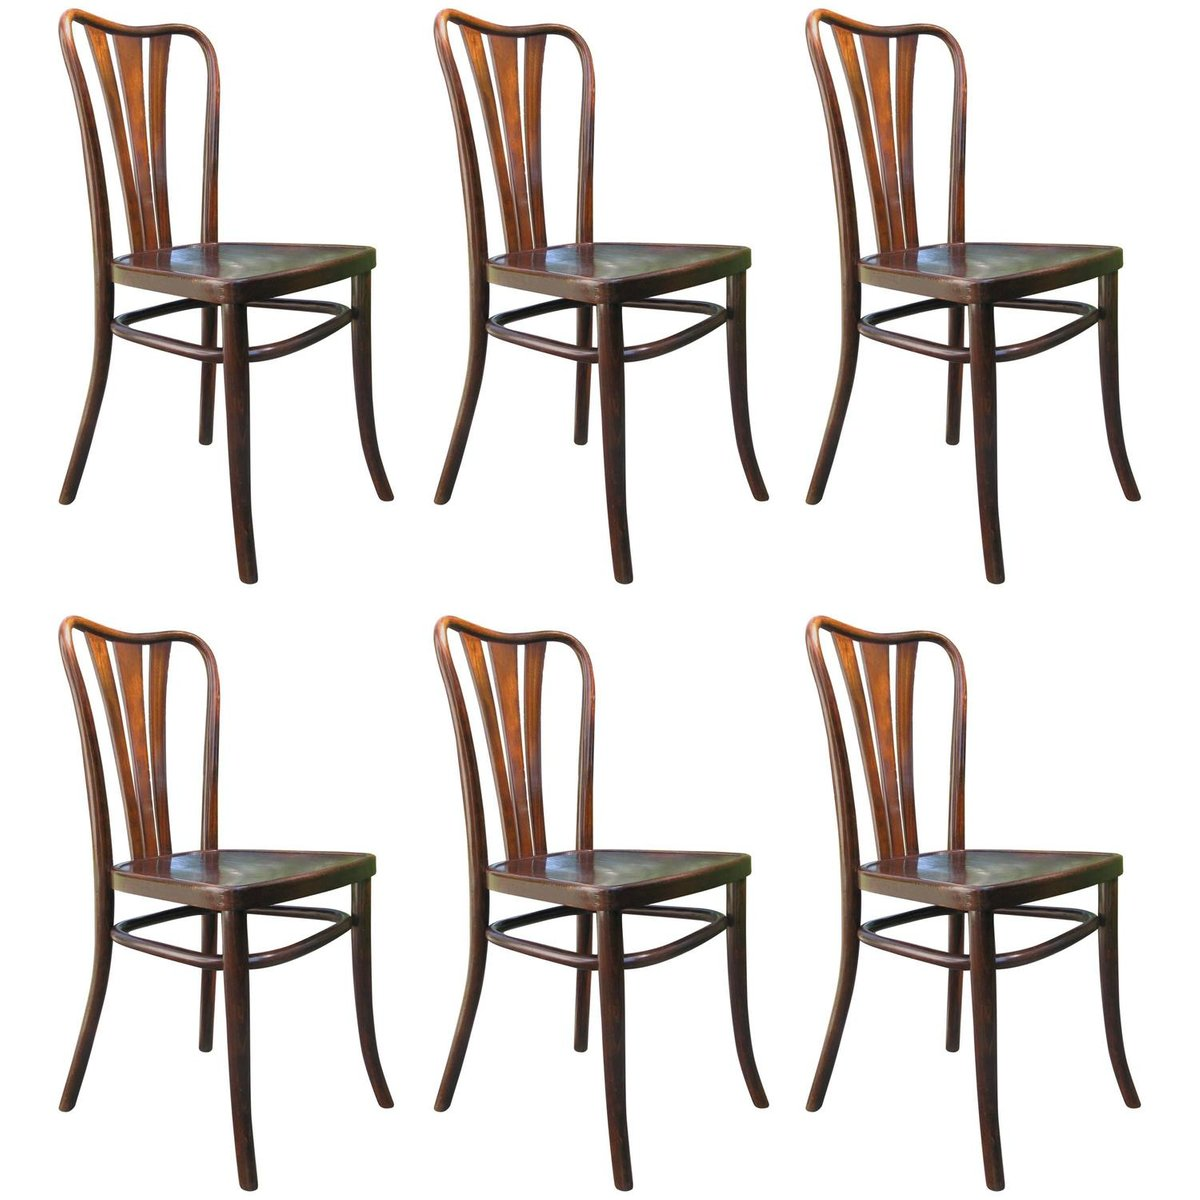 Dining Chairs Set Of 6 Vintage Dining Chairs From Thonet 1930s Set Of 6 For